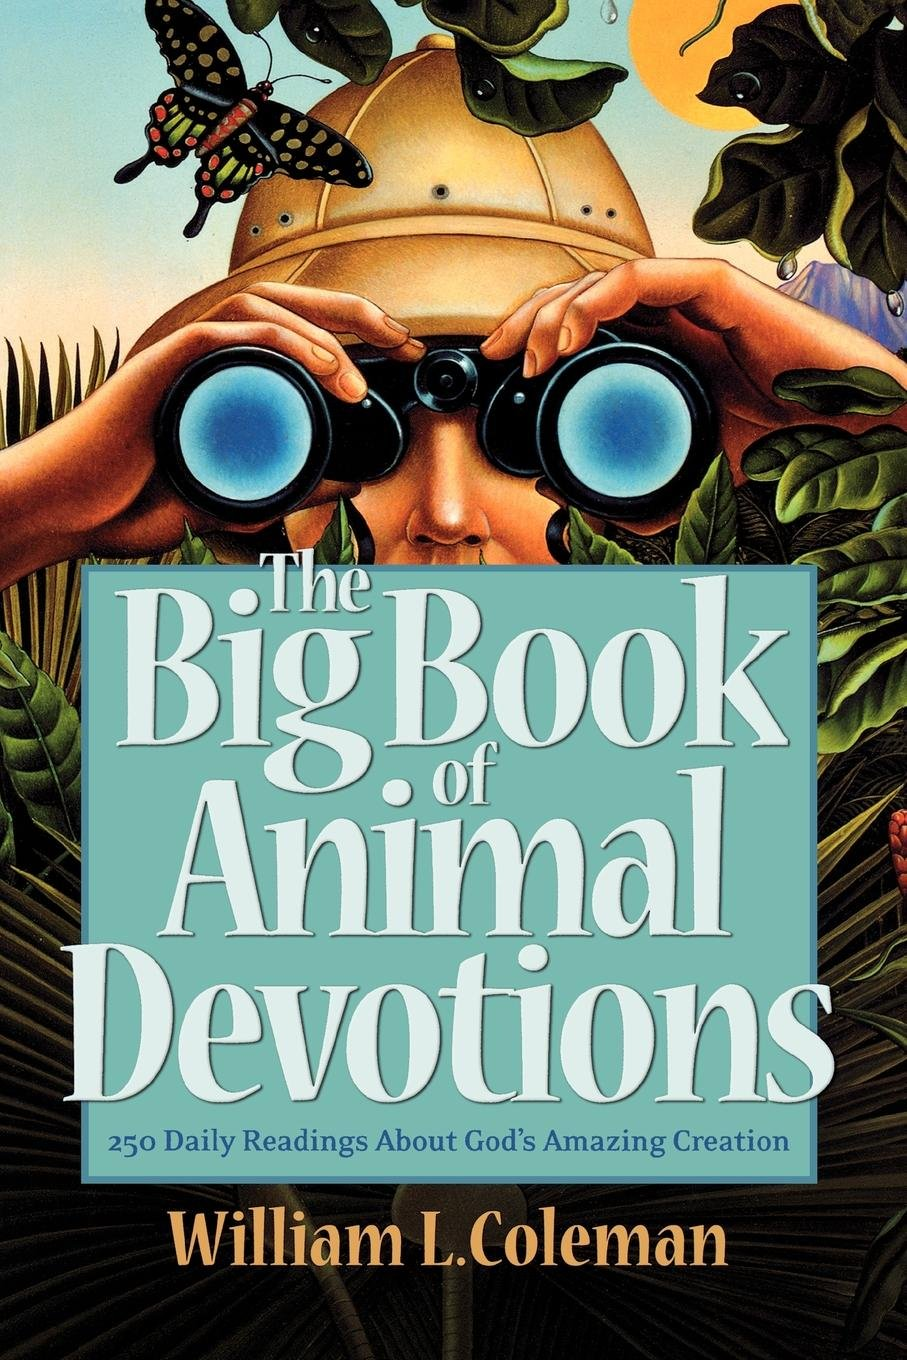 Amazon.com: The Big Book of Animal Devotions: 250 Daily Readings About  God's Amazing Creation (9780764206696): William L. Coleman: Books